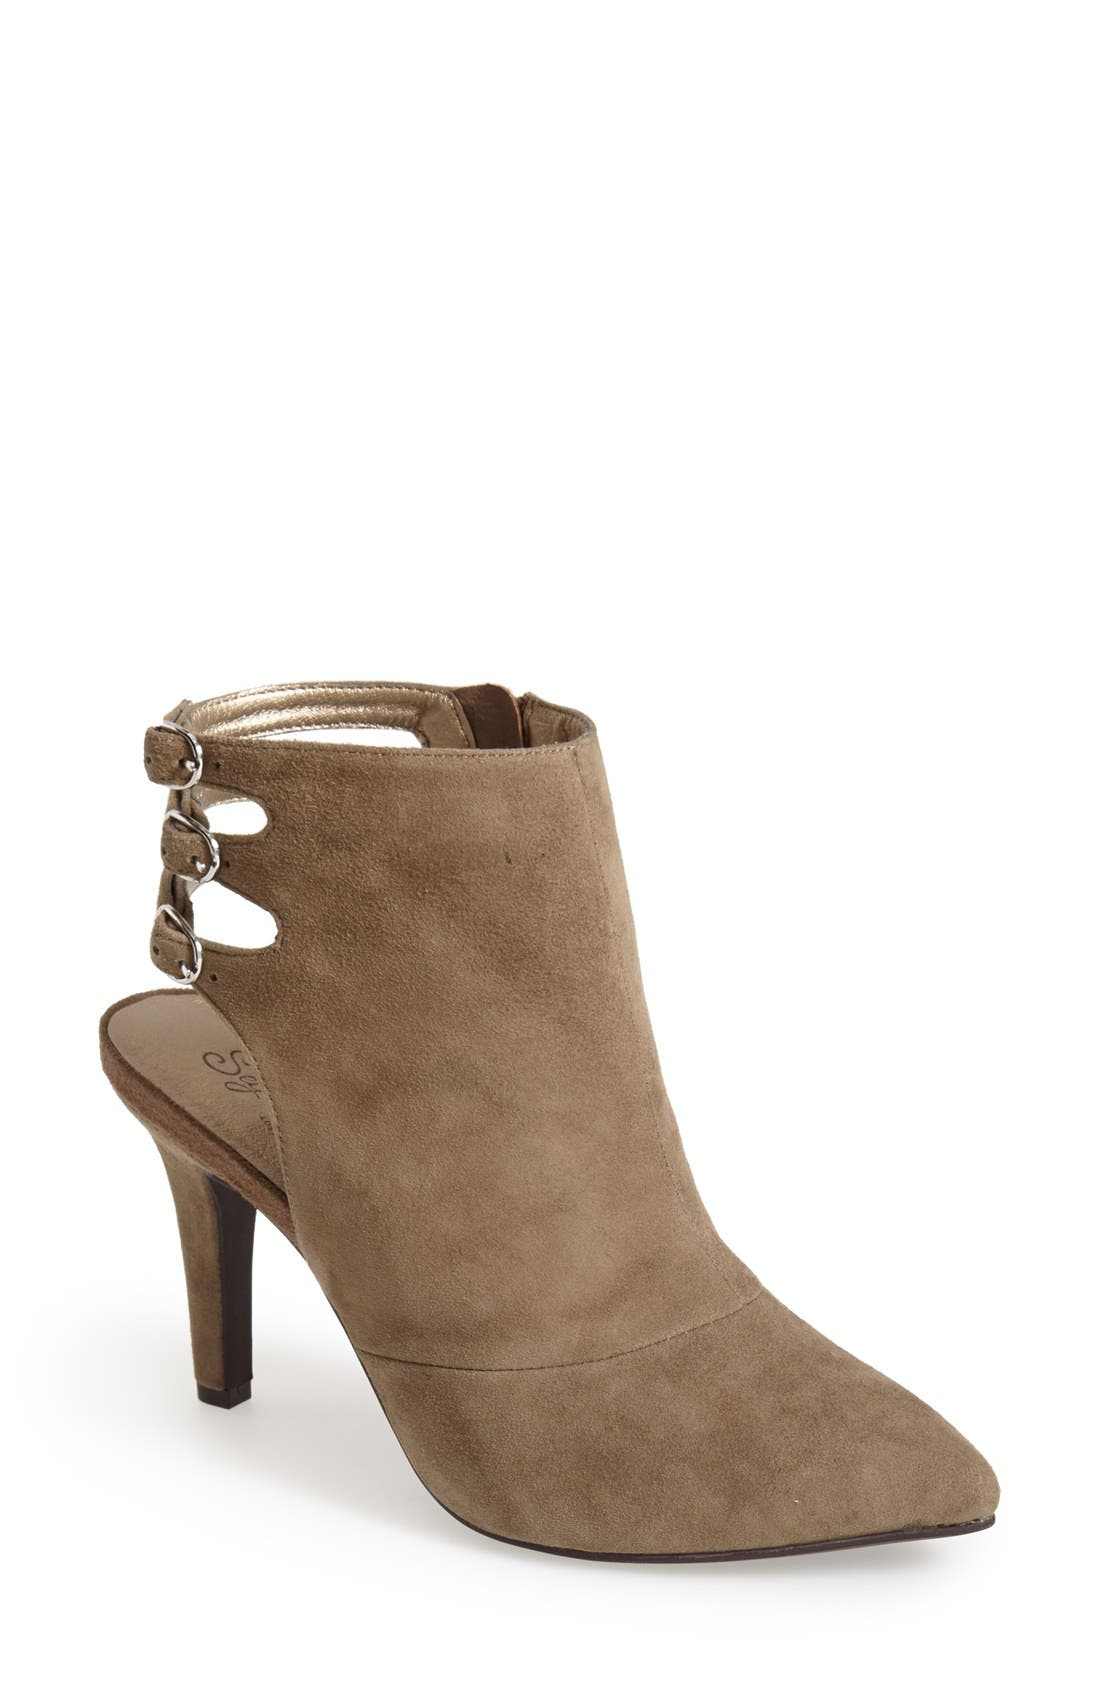 Alternate Image 1 Selected - Seychelles 'Expert' Pointy Toe Suede Bootie (Women)